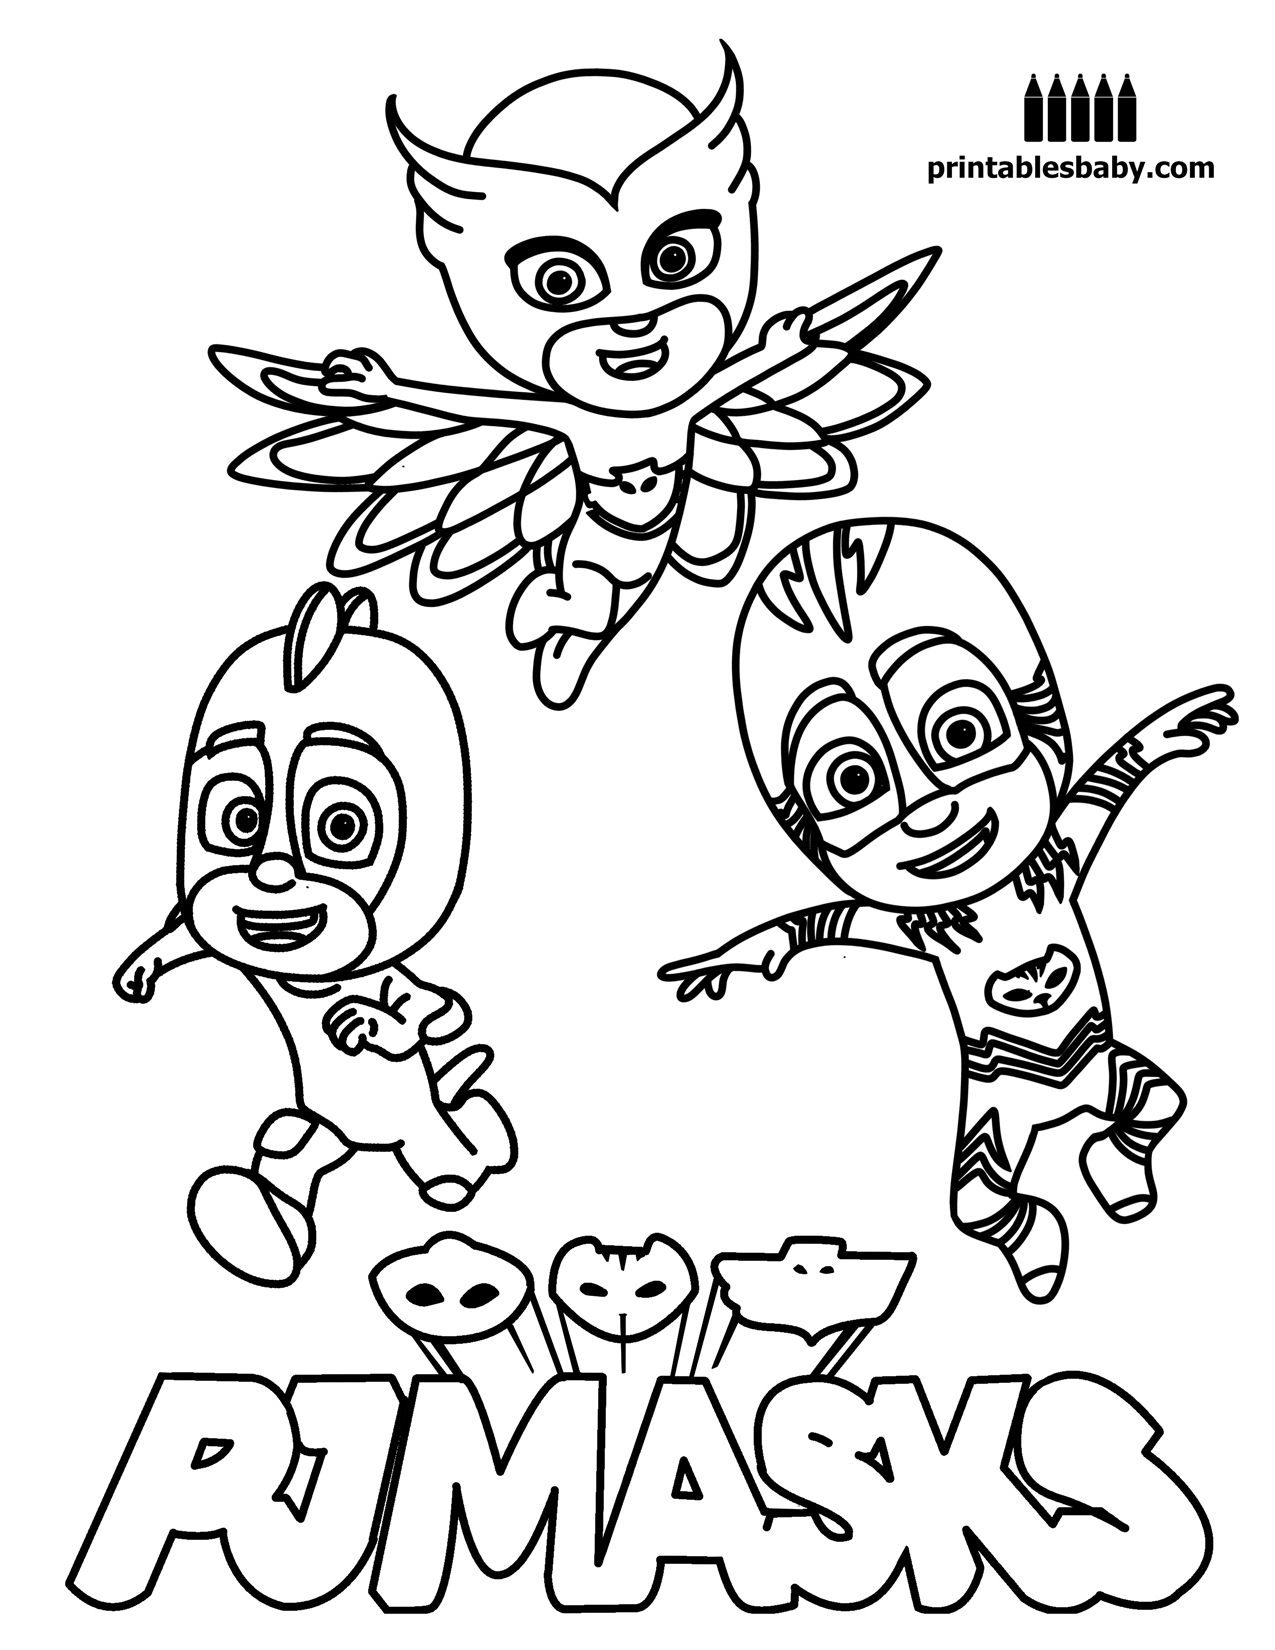 photo regarding Free Printable Paw Patrol Coloring Pages named Cost-free Paw Patrol Coloring Web pages Toward Print at